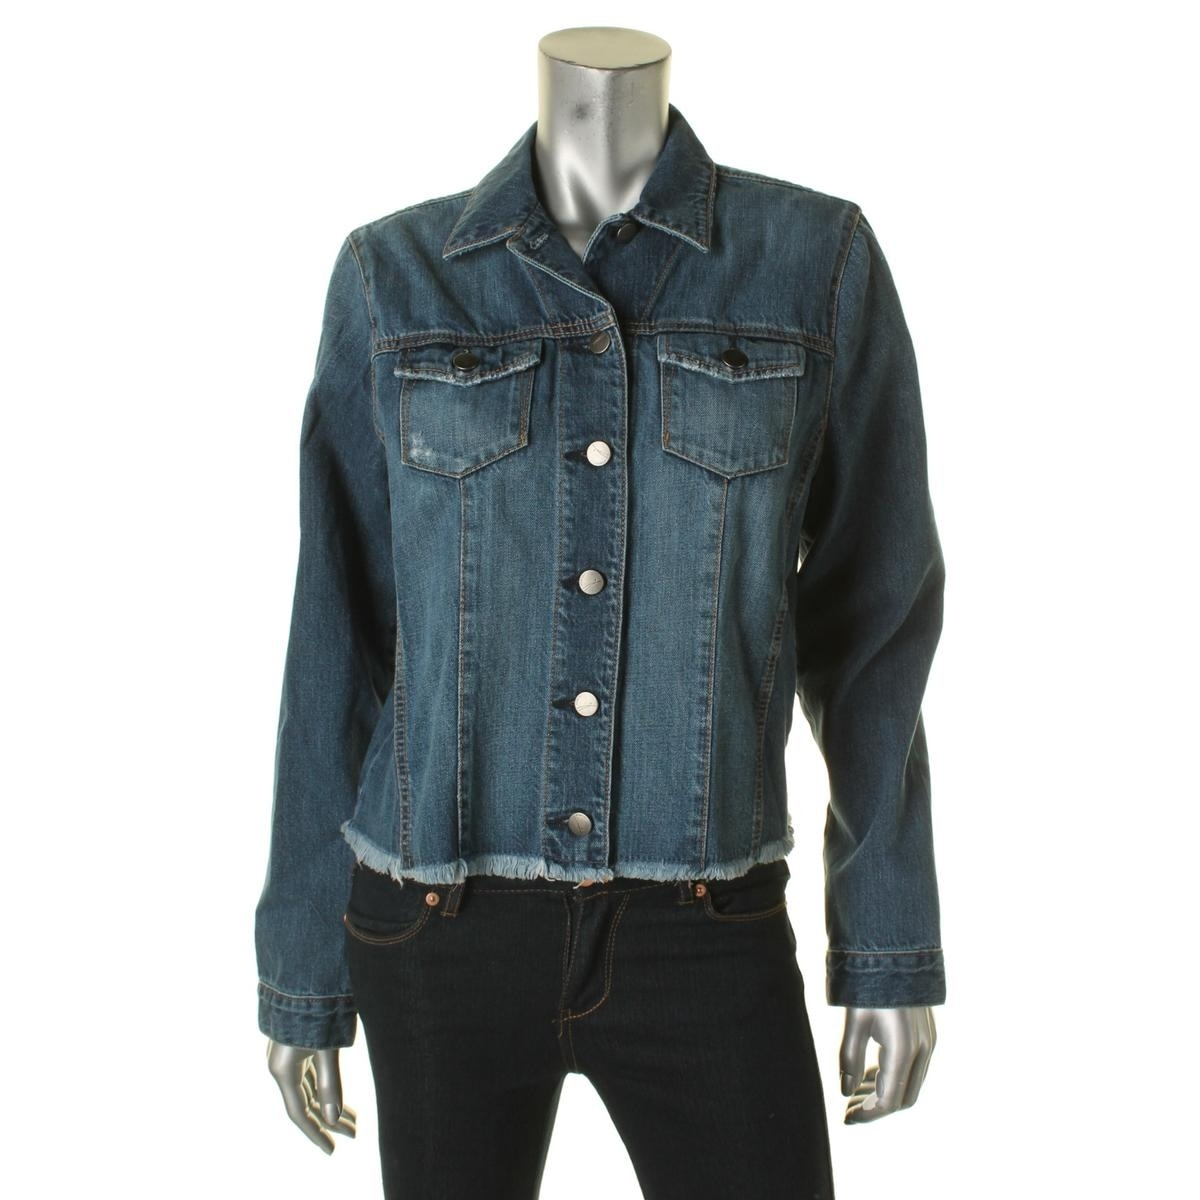 c50f260cc5e4 Shop Nobody Womens Conflict Jean Jacket Frayed Hem Long Sleeves - Free  Shipping Today - Overstock.com - 15797743